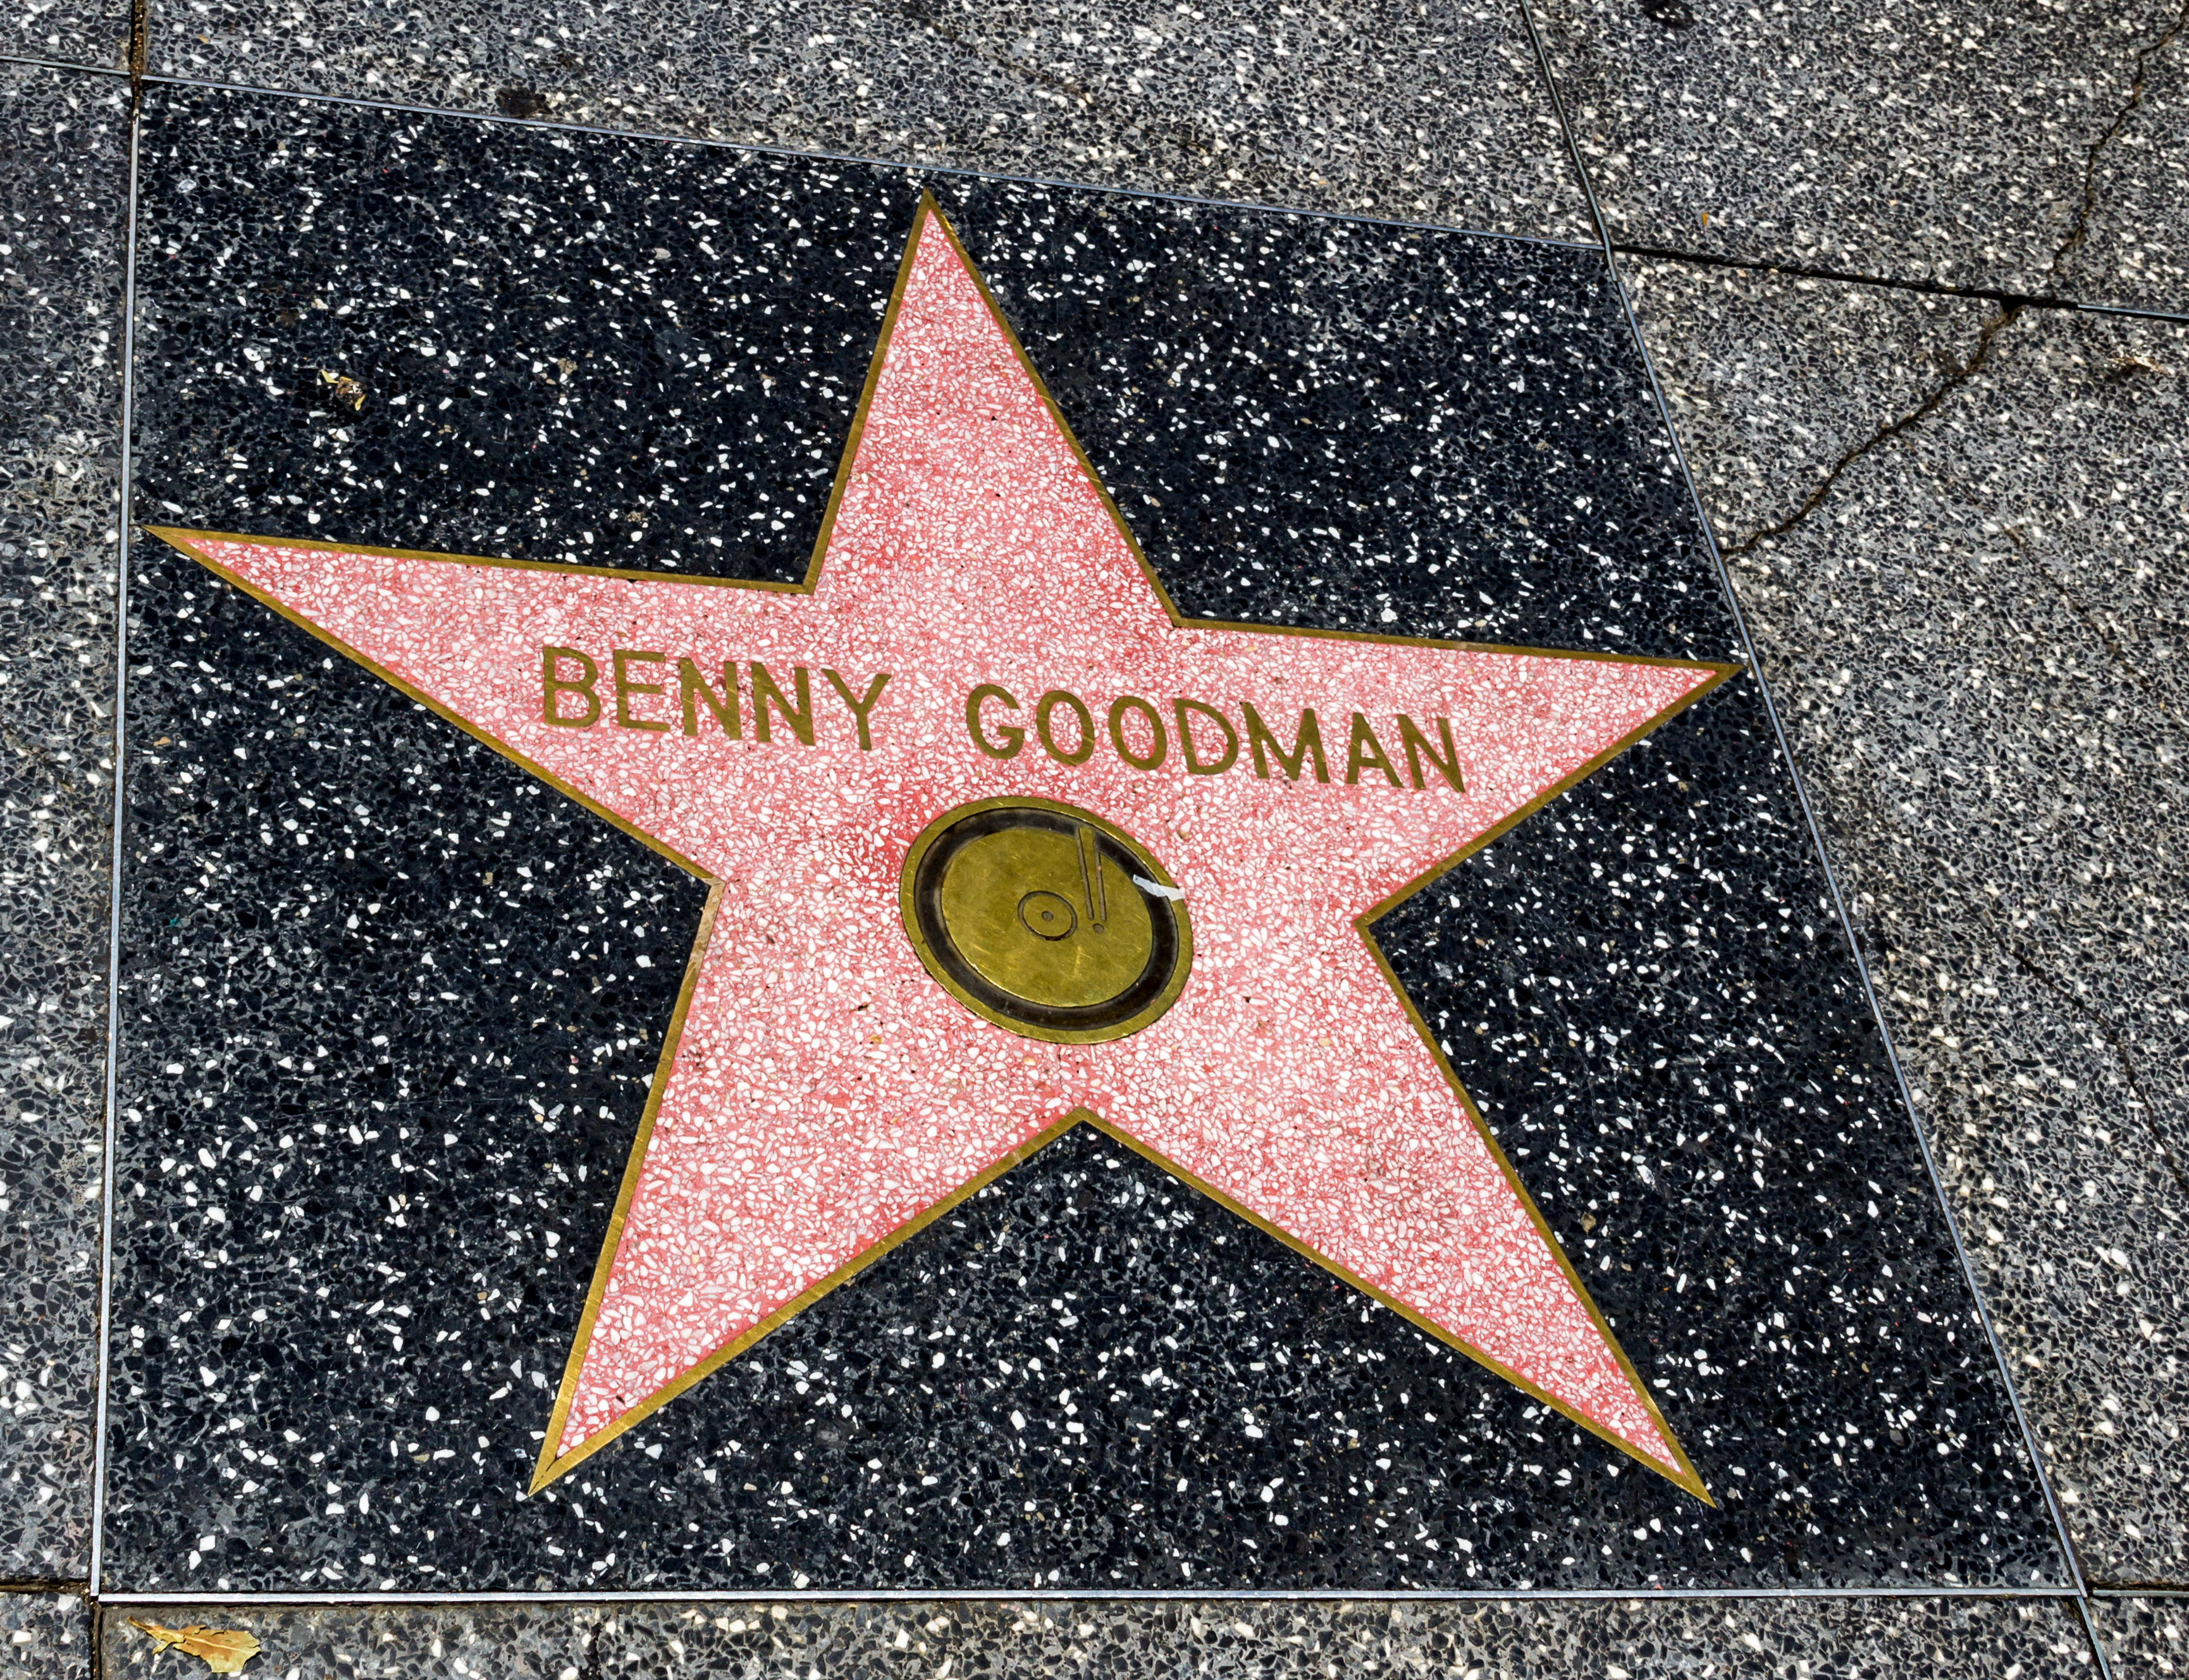 Benny Goodman Wikipedia Phillips 7 Pin Trailer Connector Wiring Diagram Awards And Honorsedit